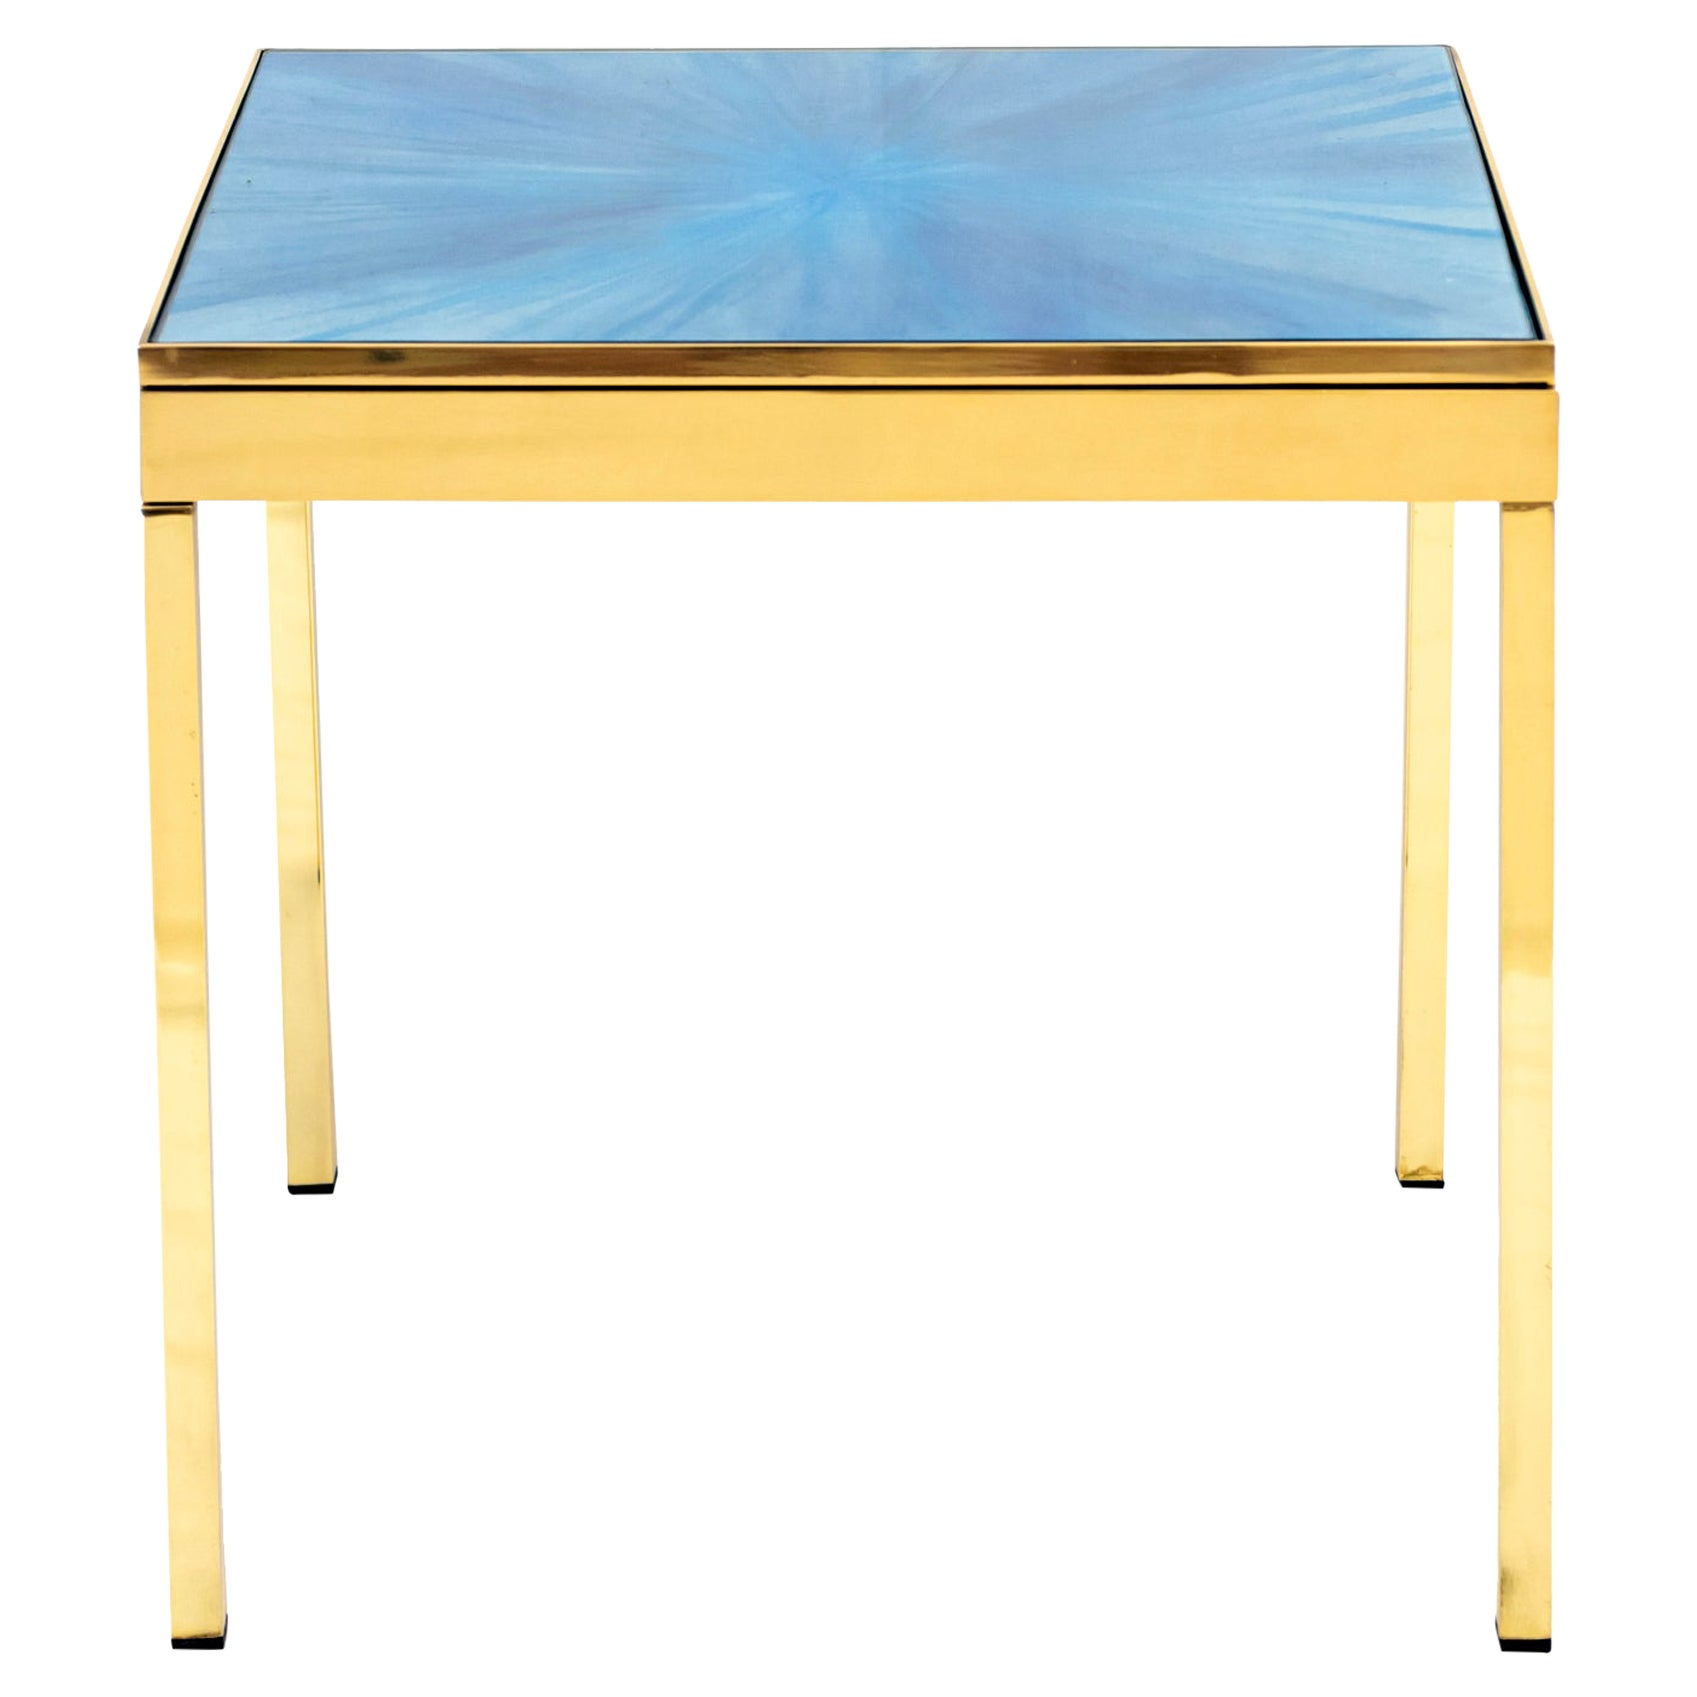 The Rays I Blue Brass Bedside Table by Allegra Hicks